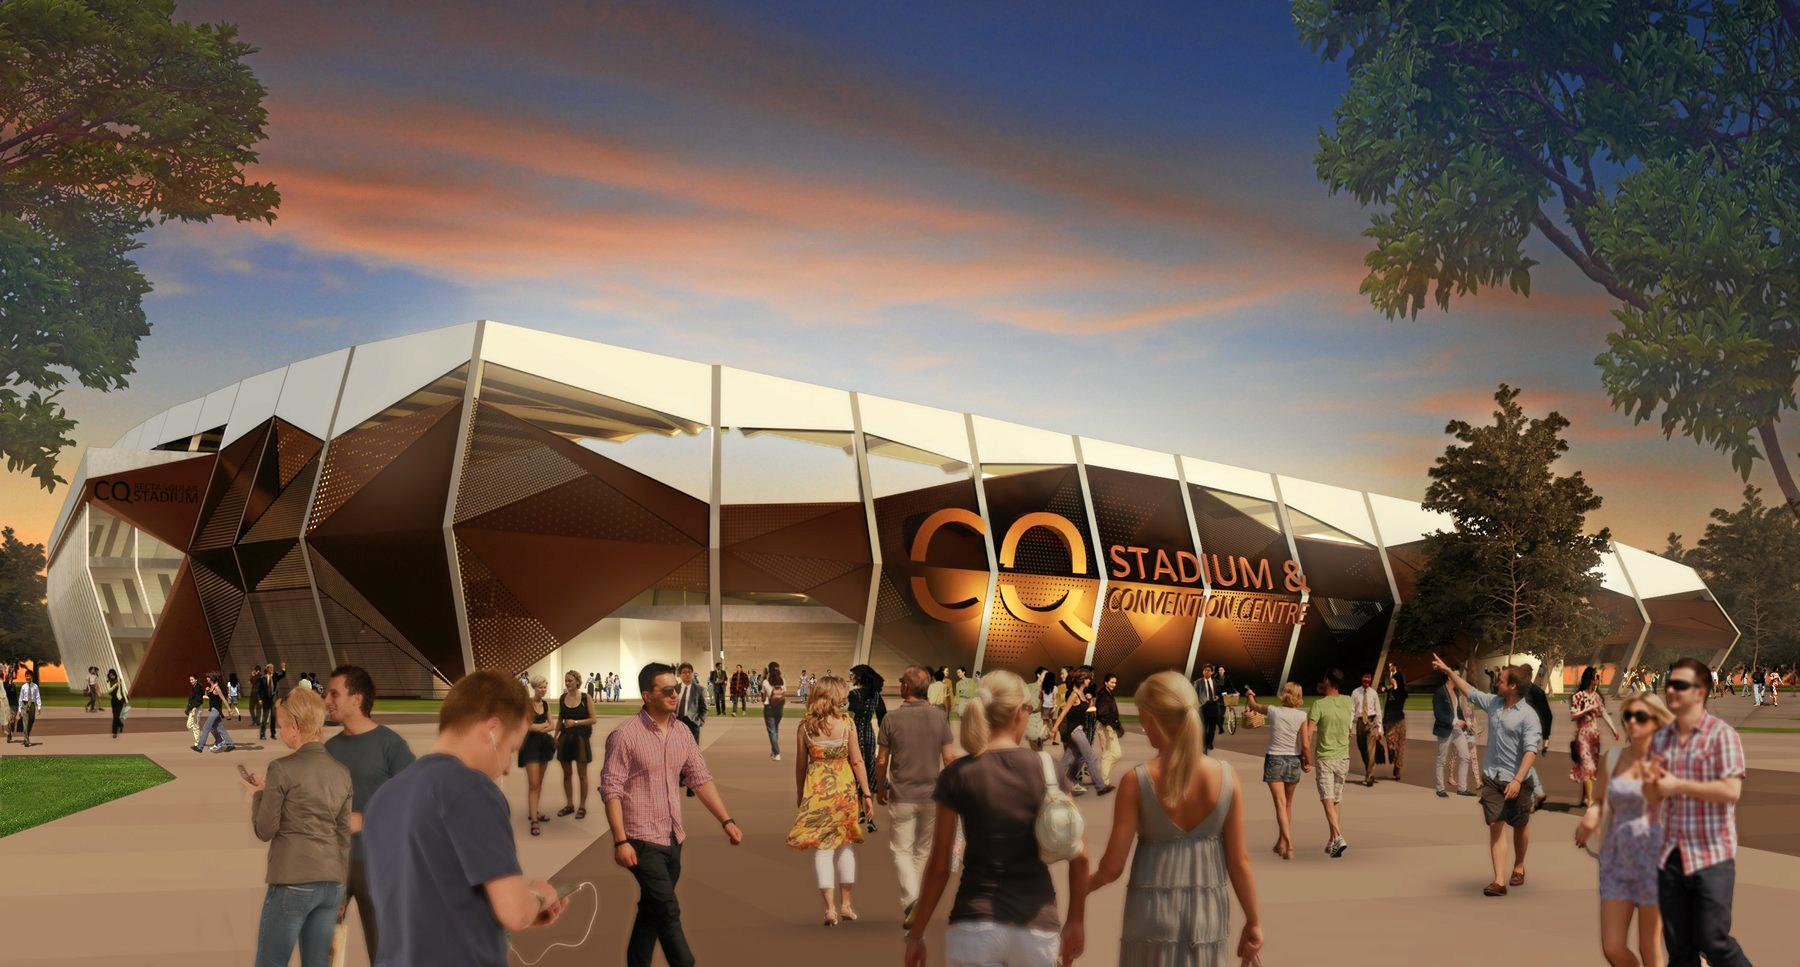 An artist's impression of Rockhampton's proposed stadium and convention centre.